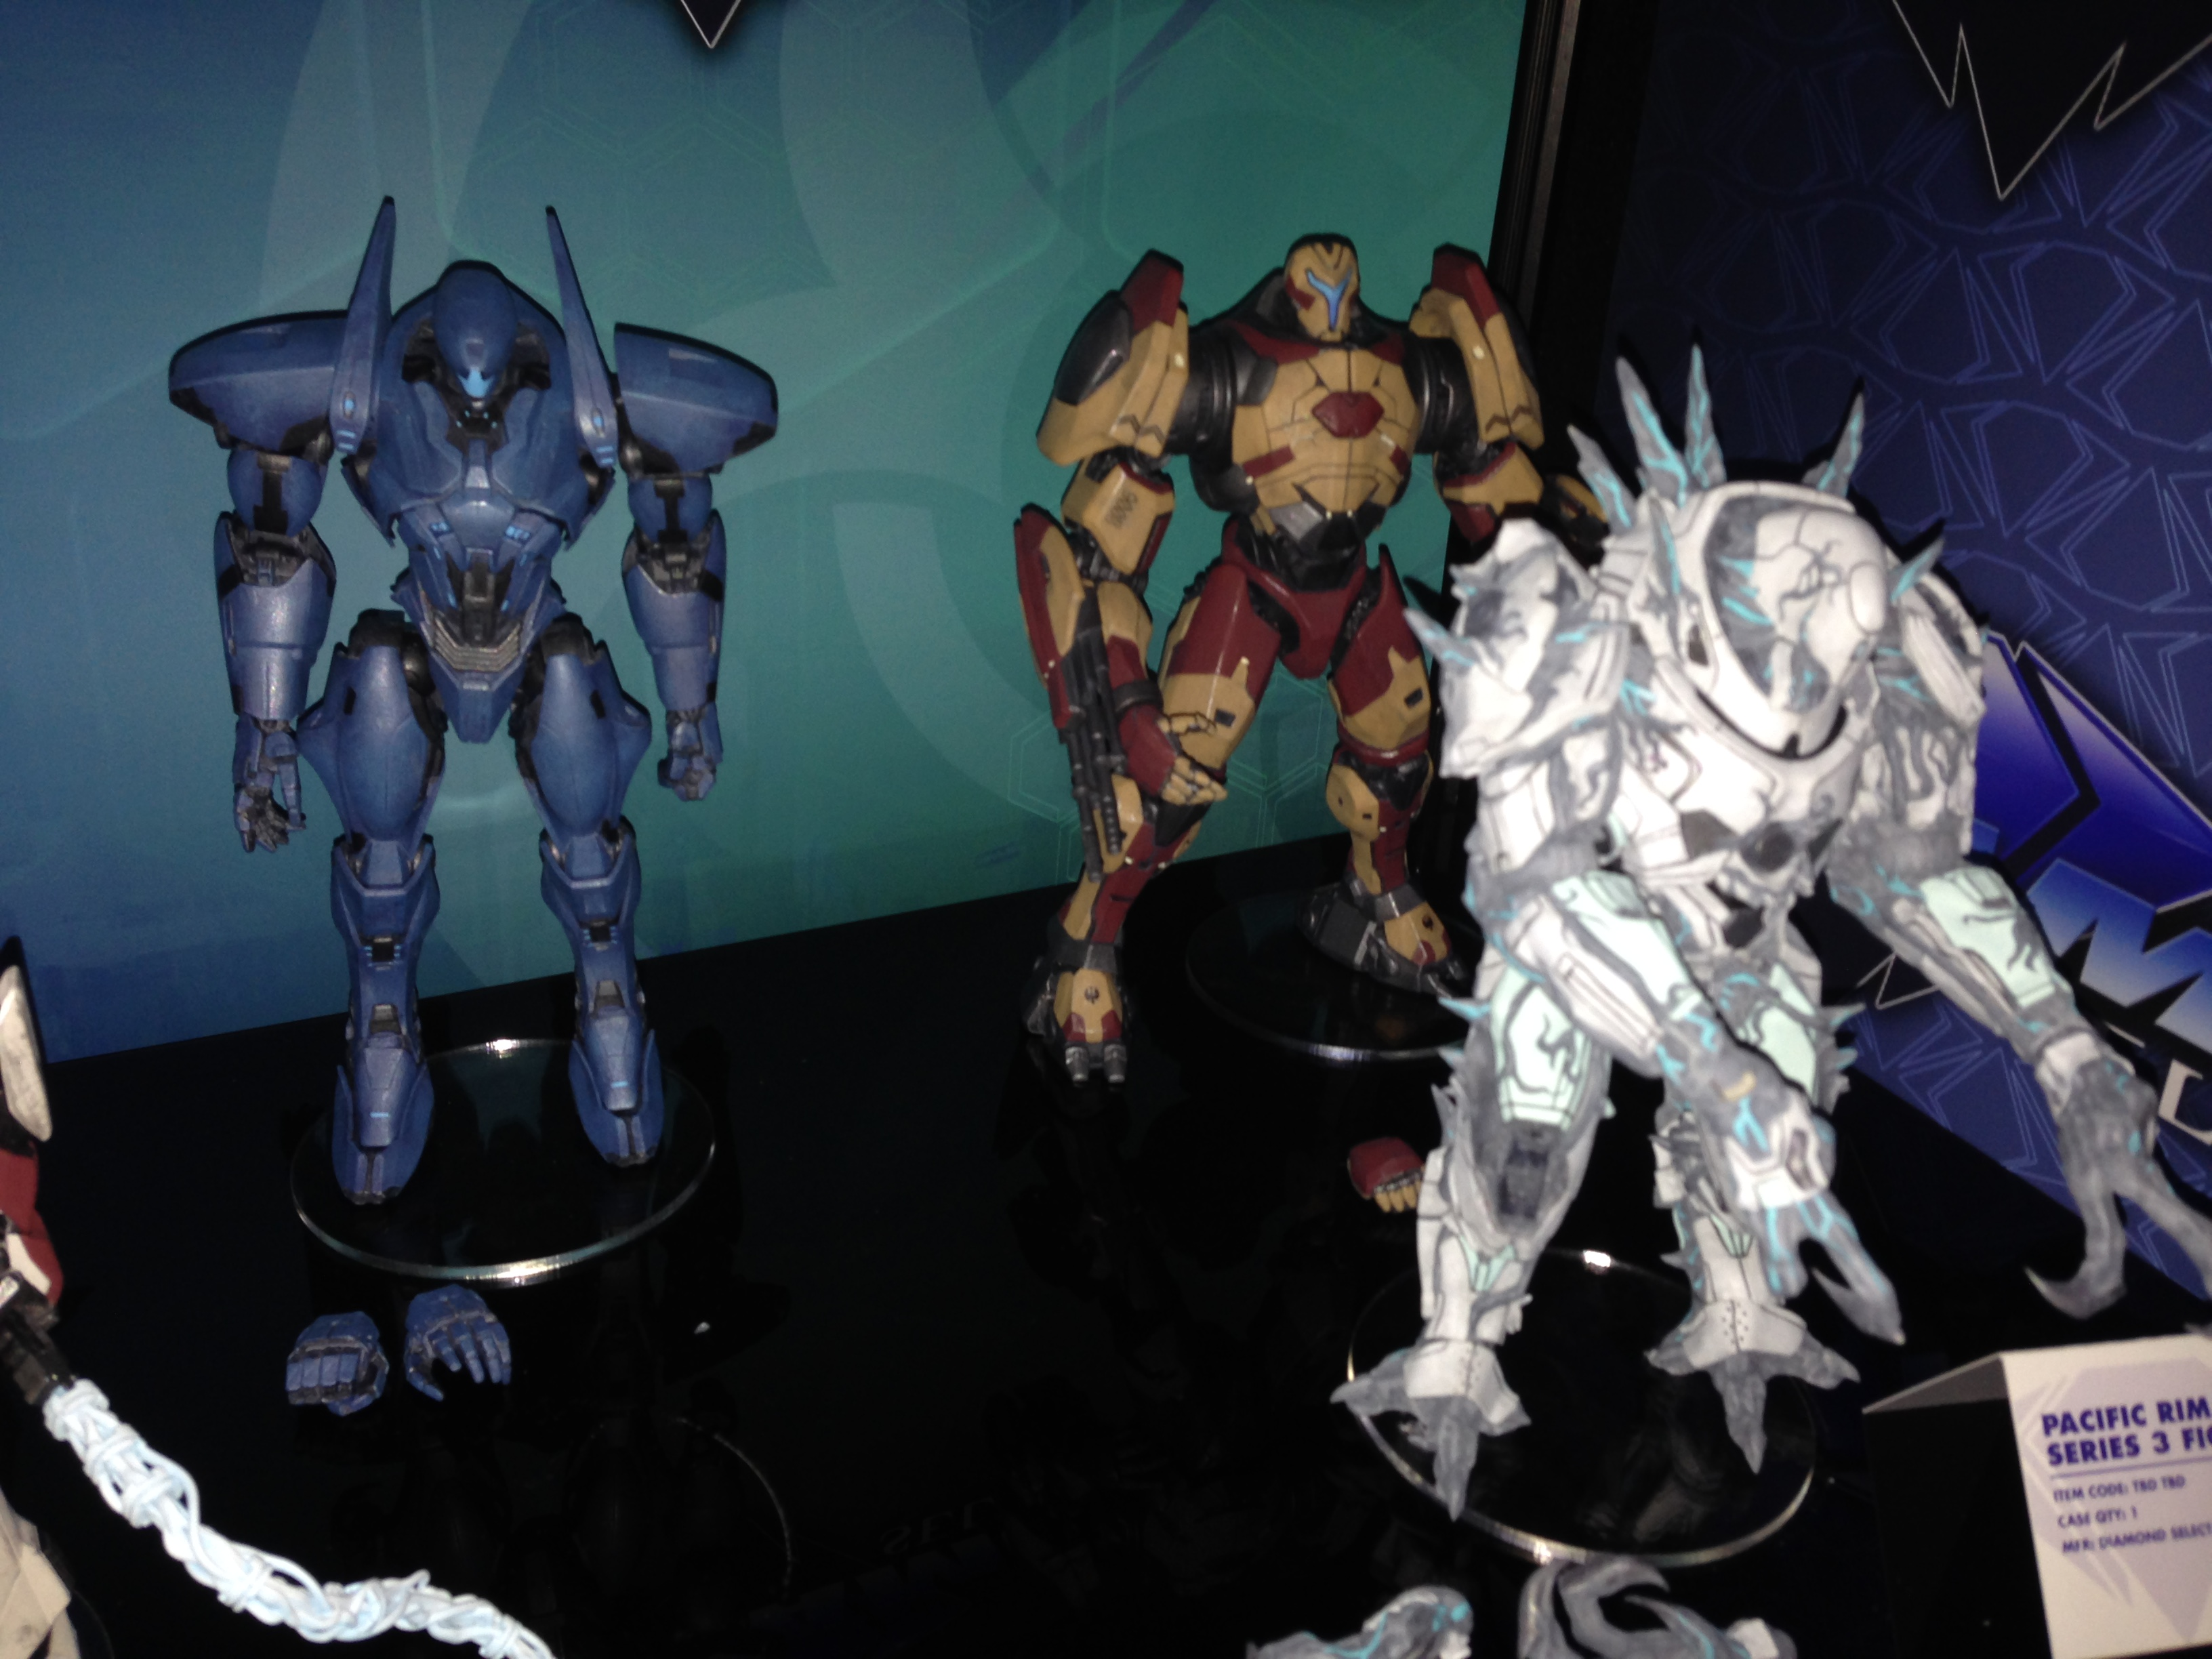 Dst Goes All Out For Pacific Rim This Year With Multiple